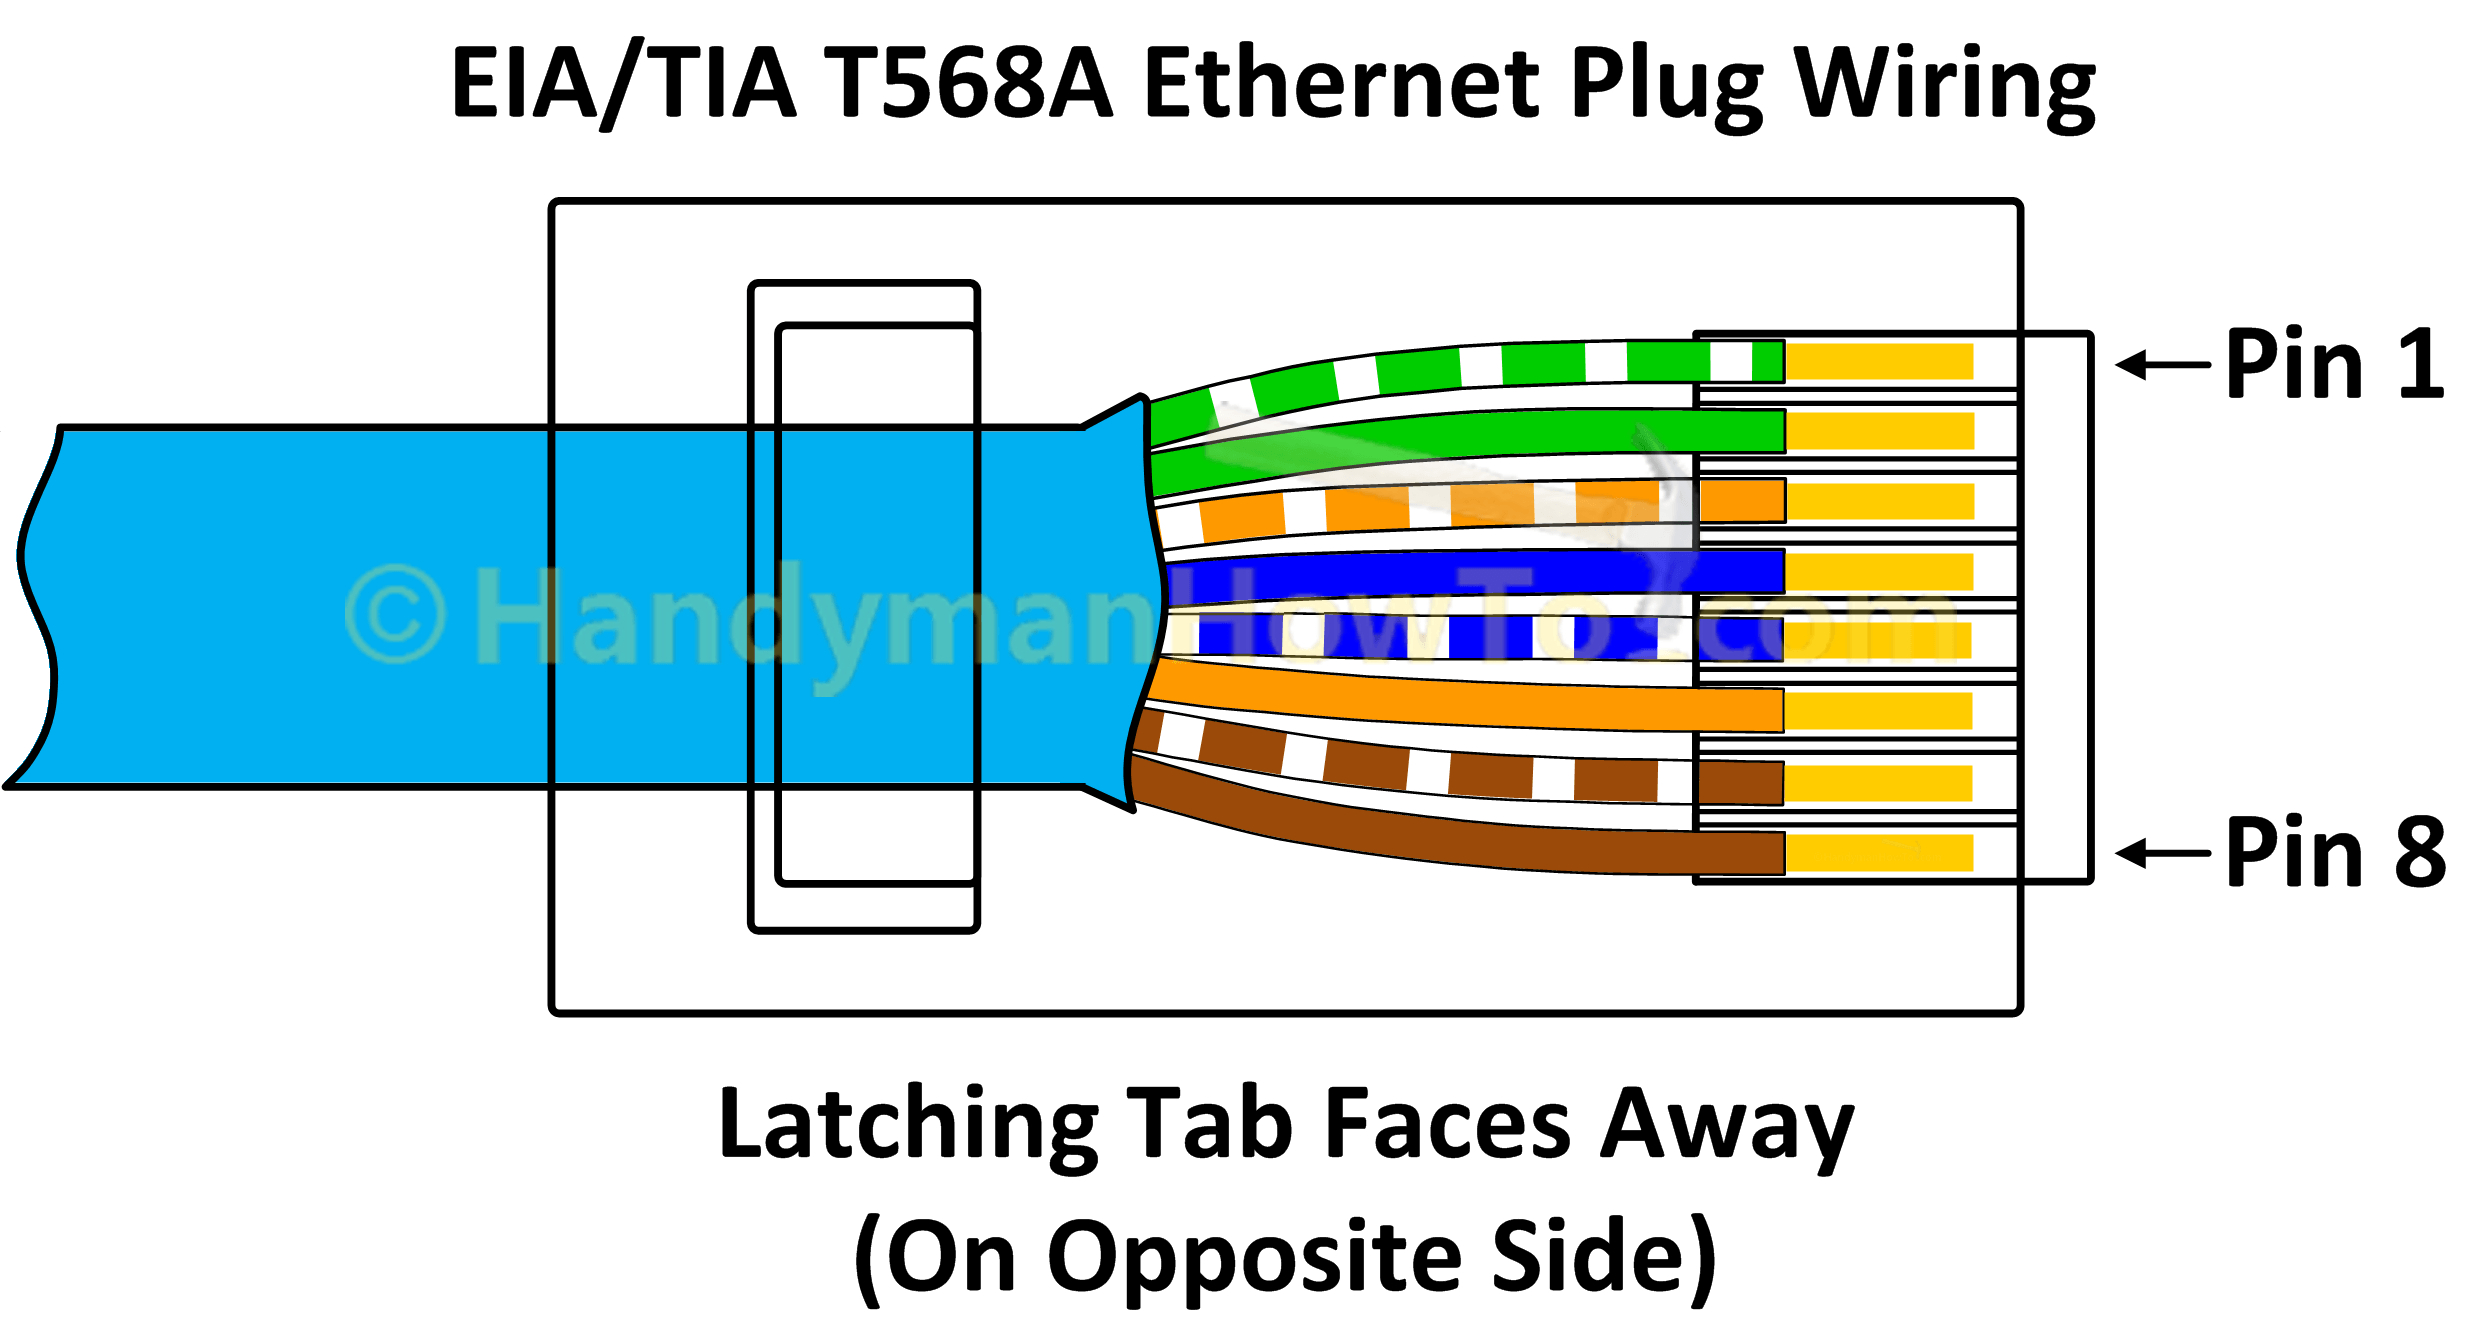 Cat 6 Ethernet Cable Wiring - Wiring Diagrams Hubs - Network Wiring Diagram